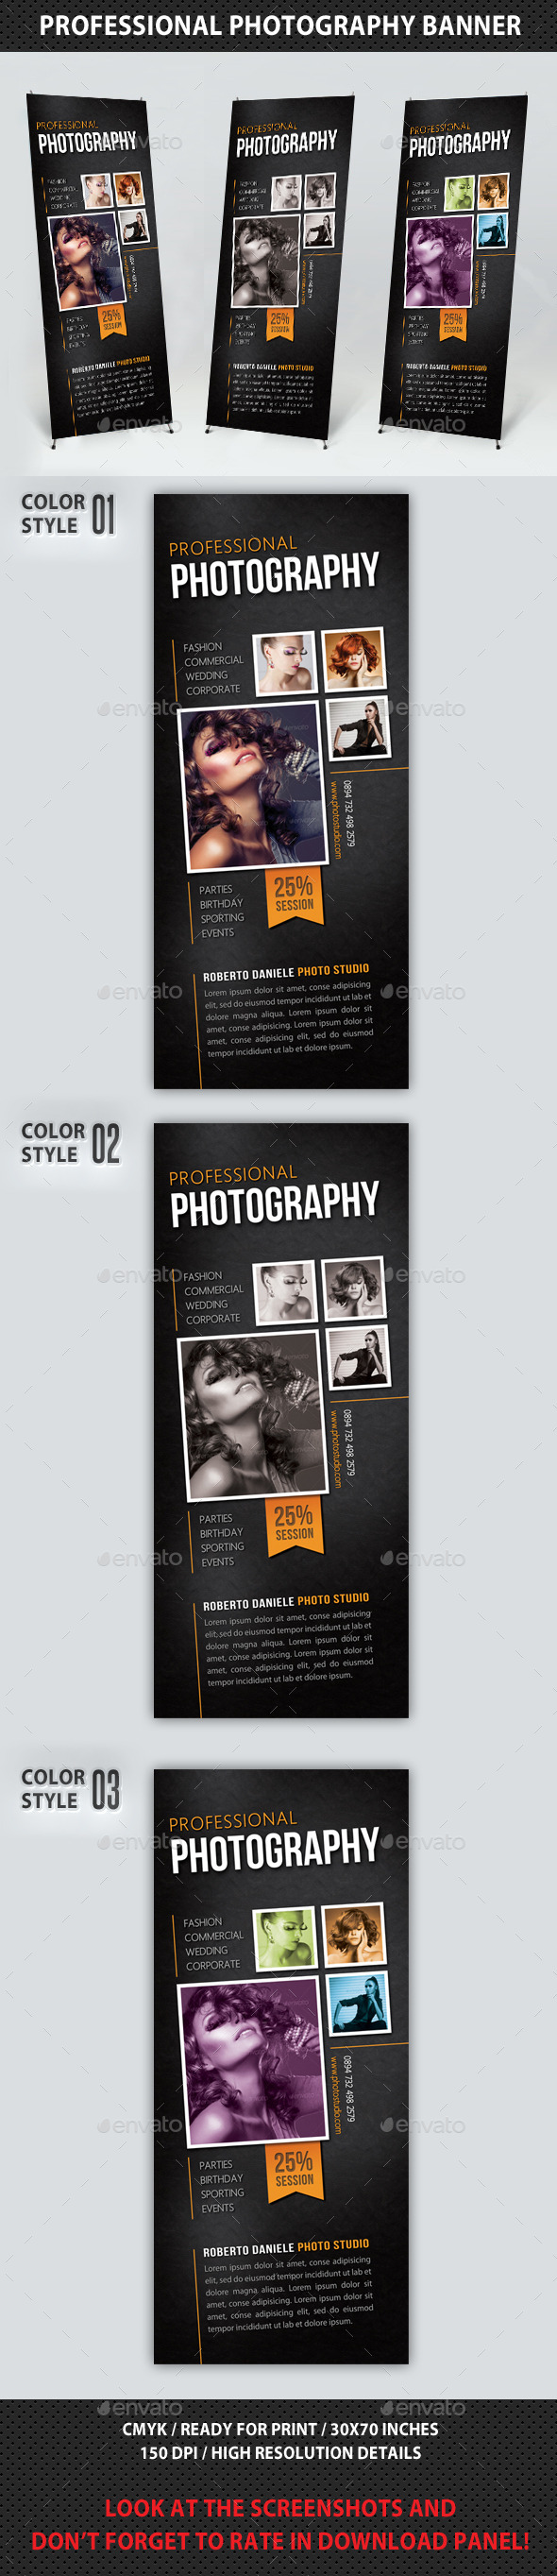 GraphicRiver Photography Studio Multipurpose Banner 13 8989040